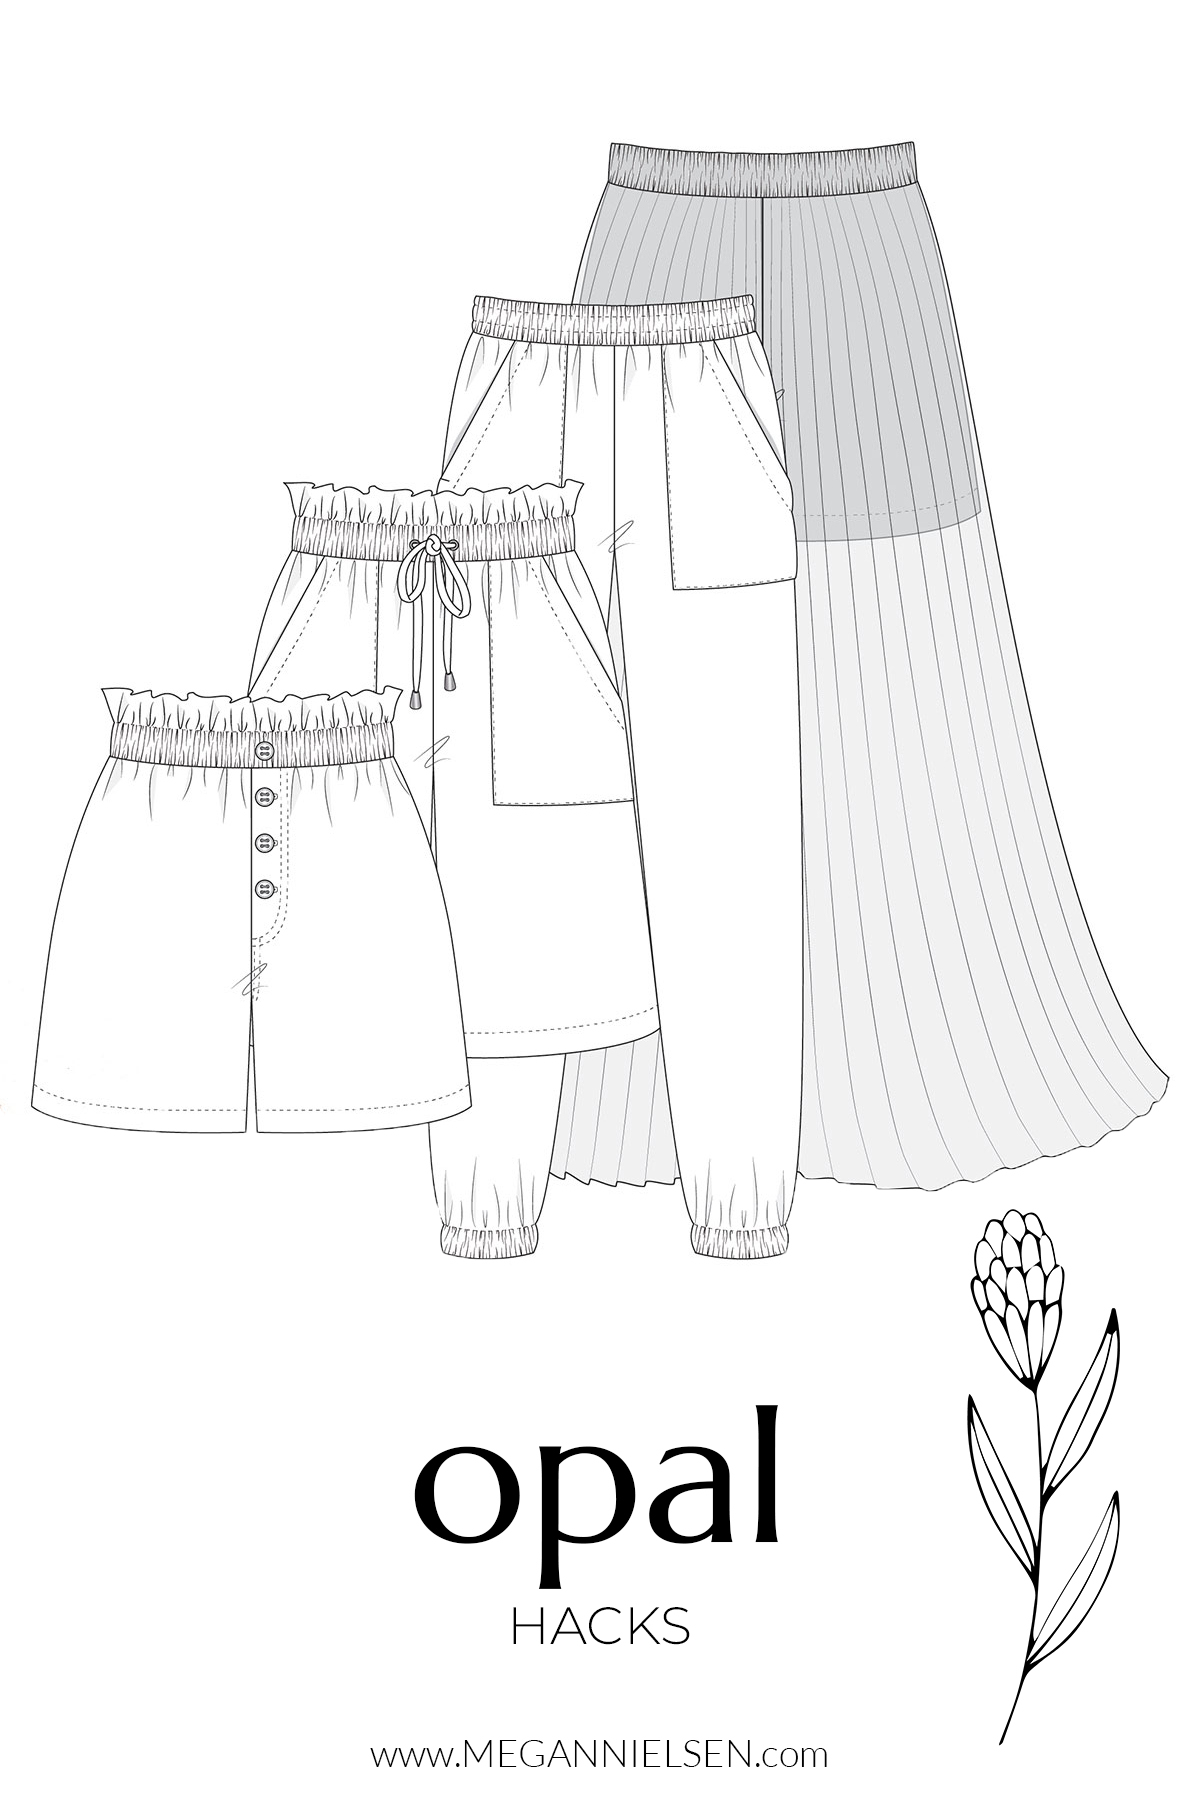 Hacks and variations for the Opal pants and short pattern